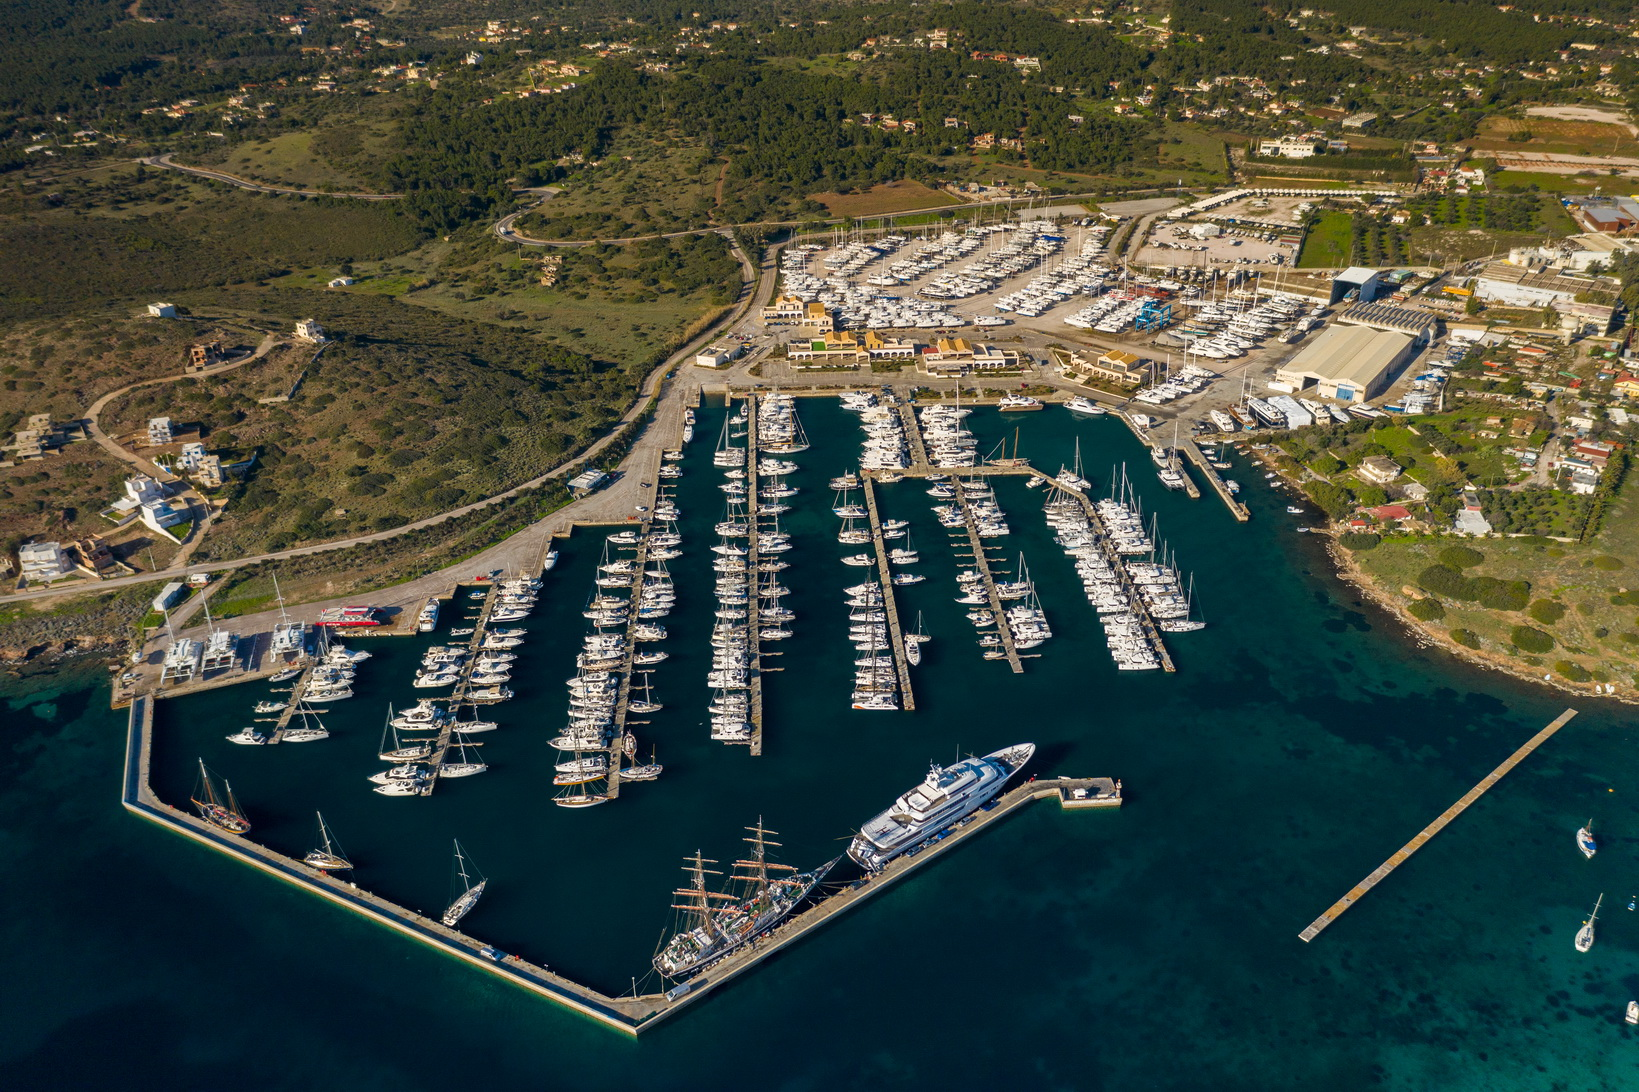 Aerial shot of the Olympic Yacht Show